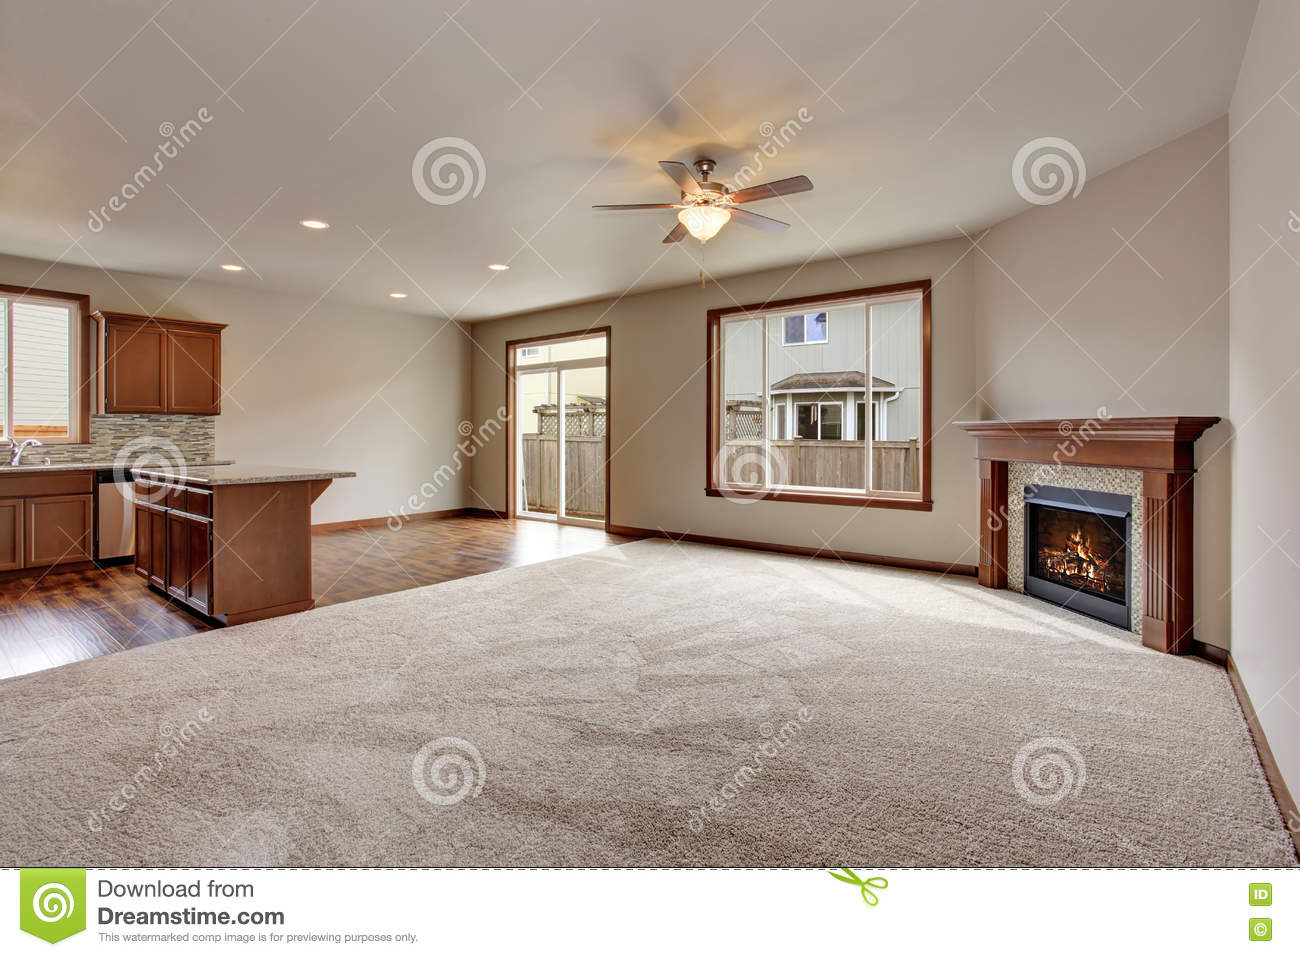 Floor Interior Living Room